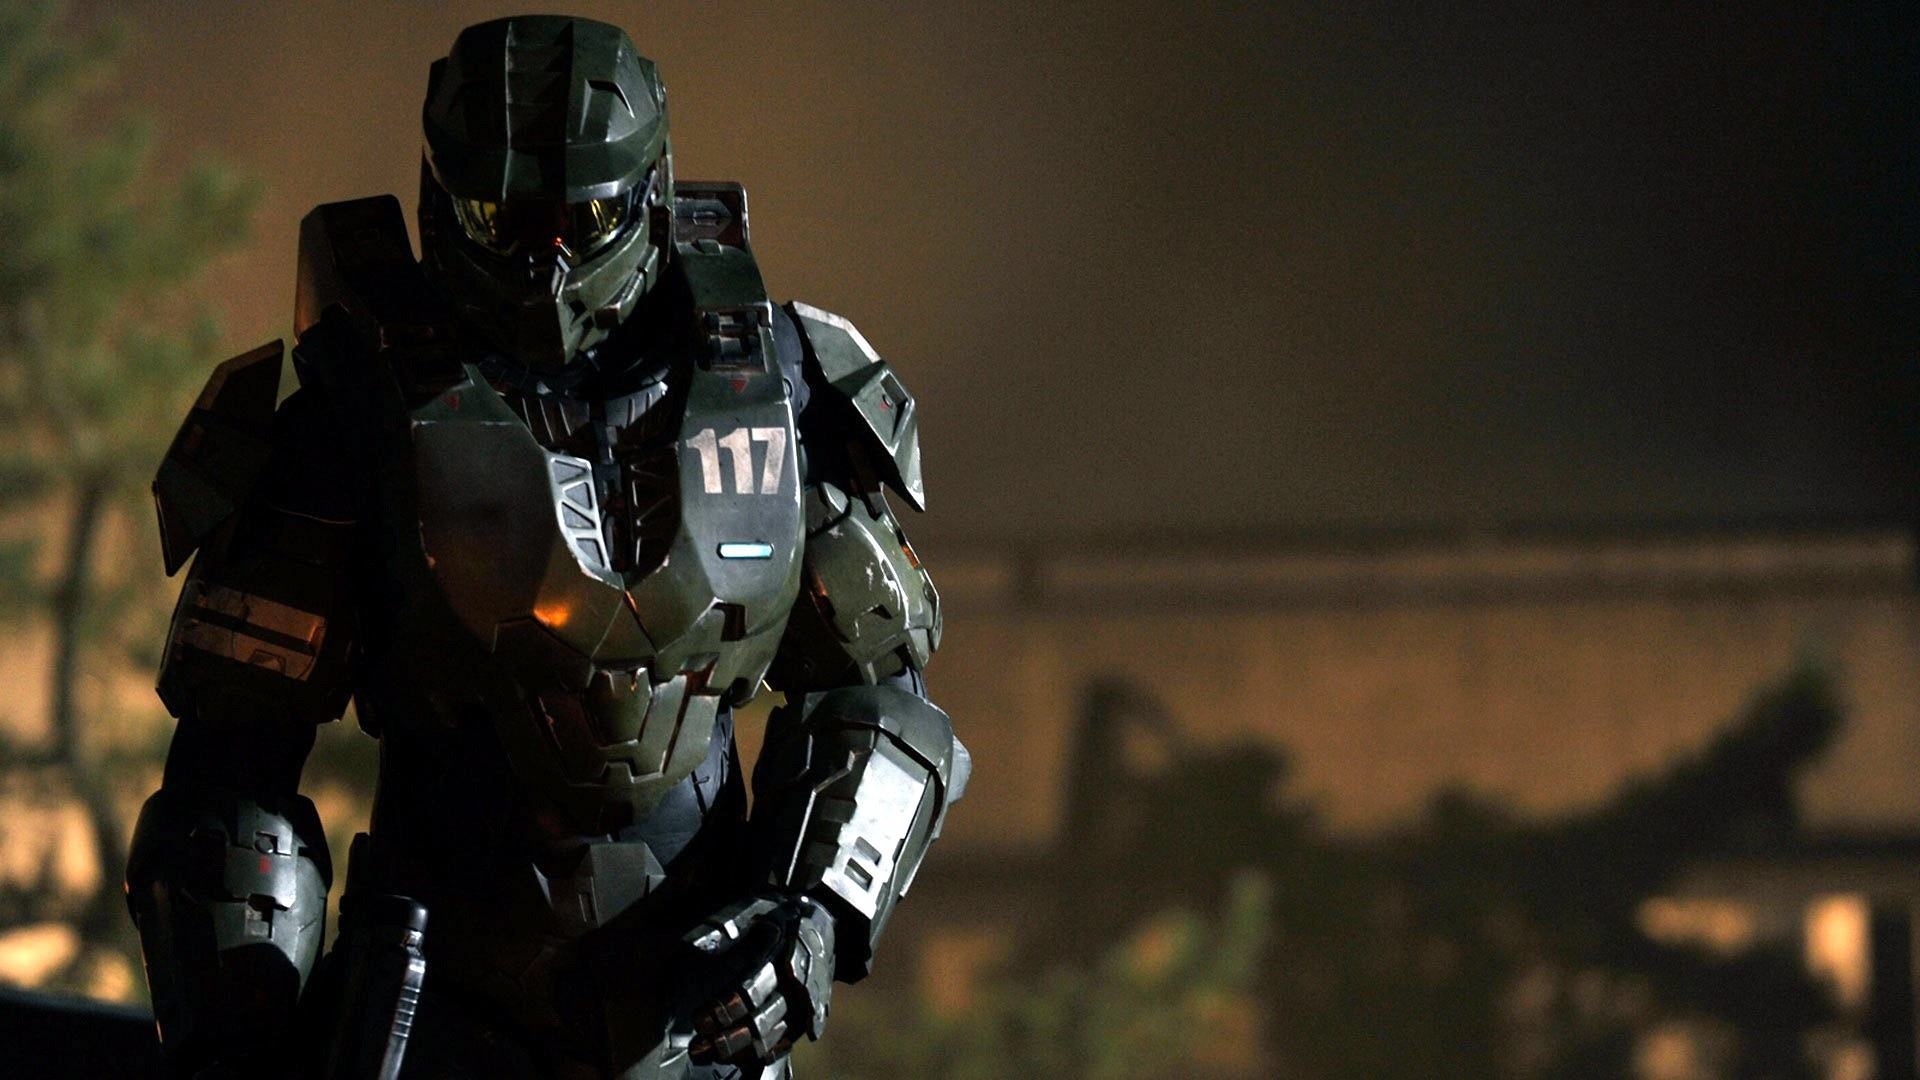 Master chief wallpaper 14716 1920x1080 px hdwallsource master chief wallpaper 14716 voltagebd Image collections